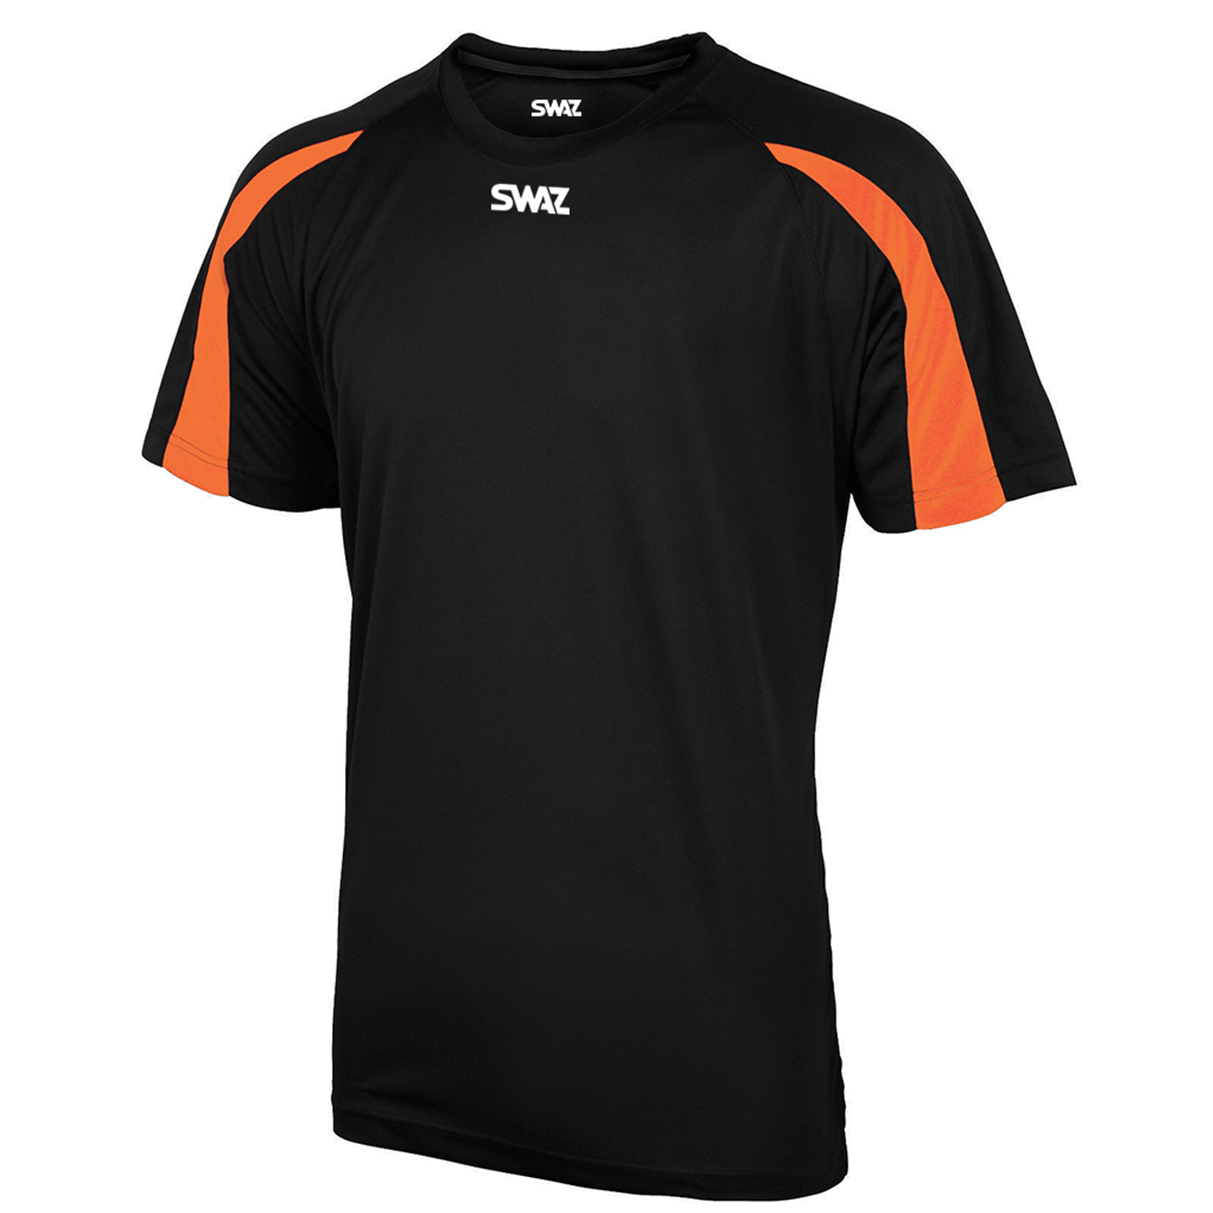 SWAZ Premier Training T-Shirt – Black/Orange